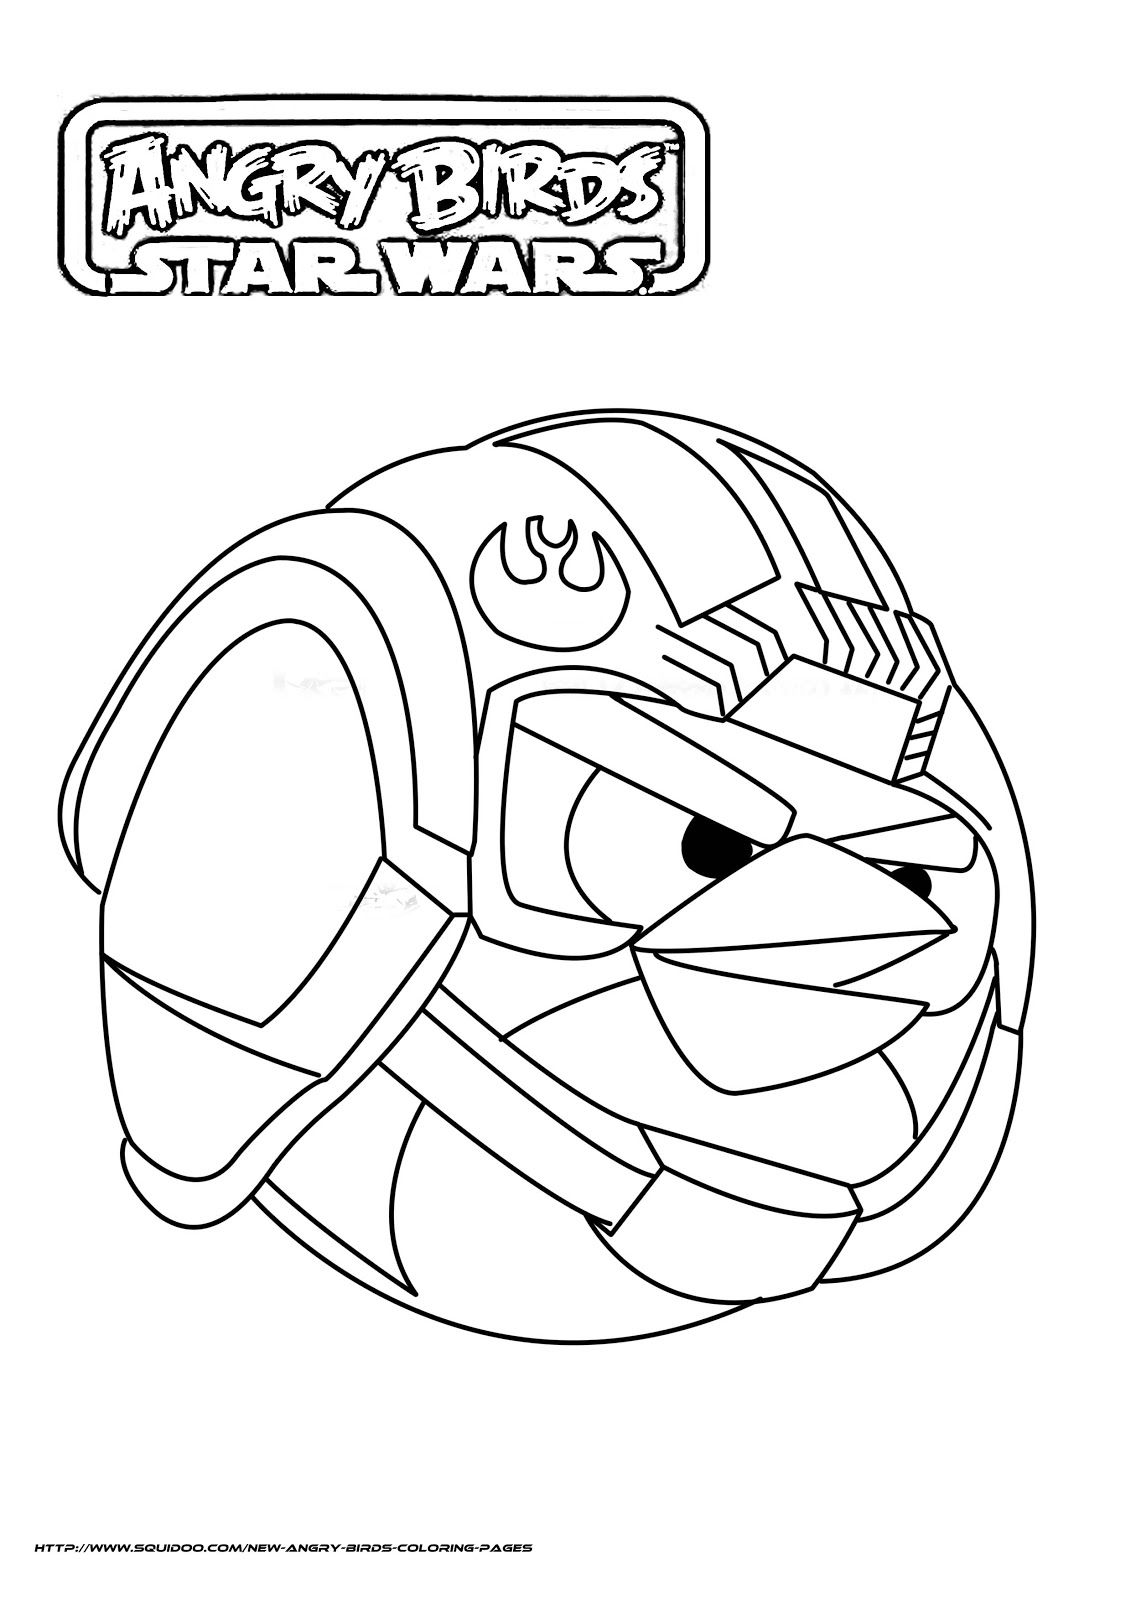 angry birds star wars coloring pages  Birthday Ideas  Pinterest